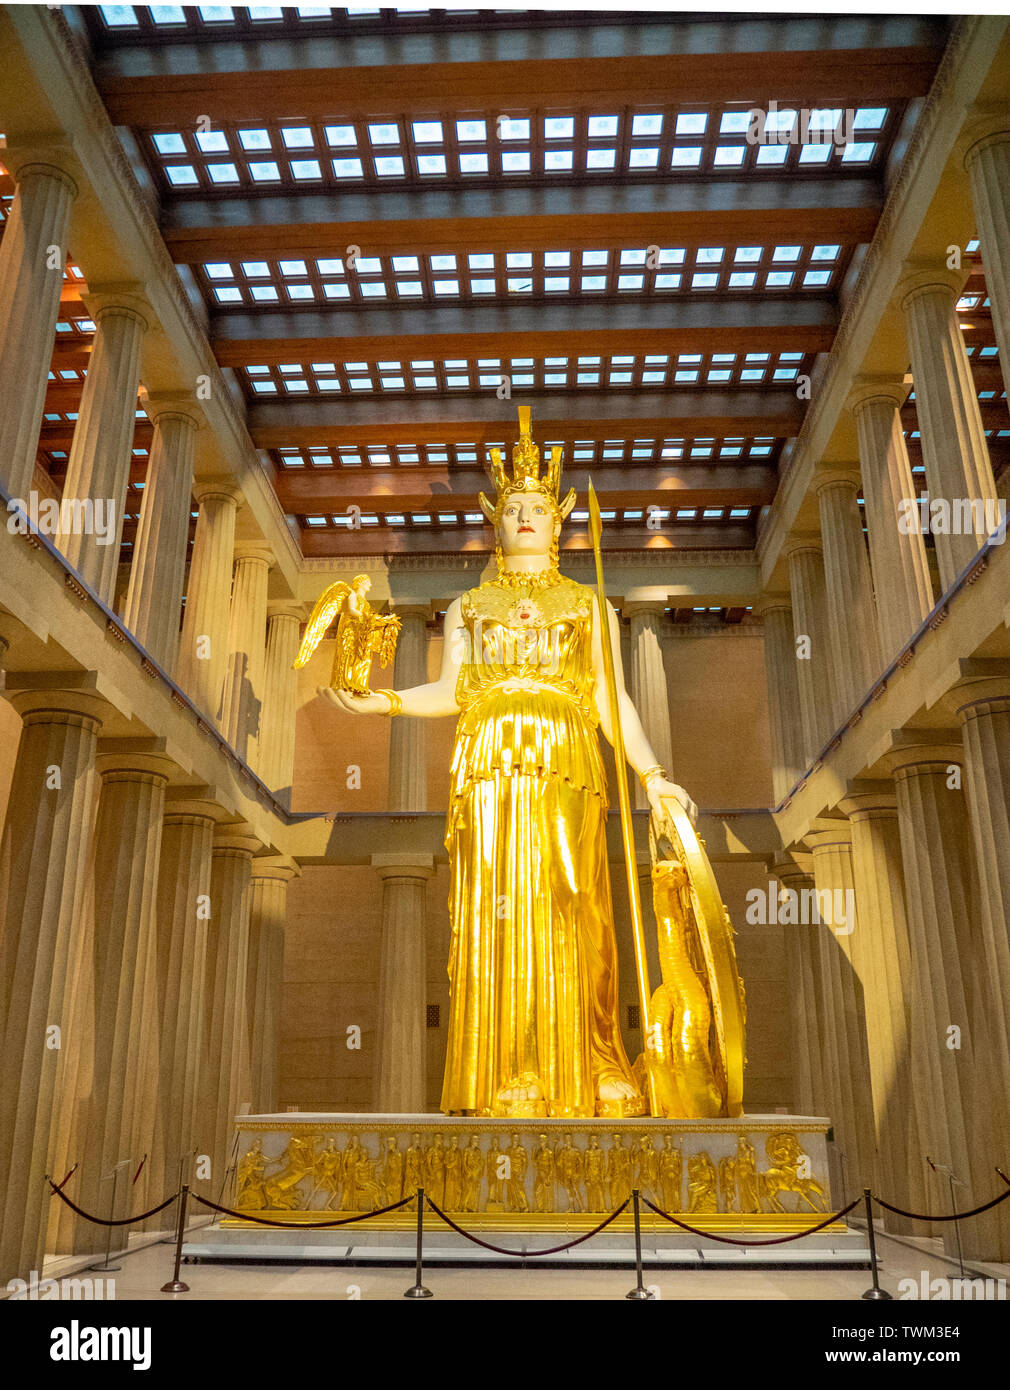 full-scale-replica-of-athena-parthenos-statue-holding-statue-of-goddess-nike-inside-parthenon-in-centennial-park-nashville-tennessee-usa-TWM3E4.jpg